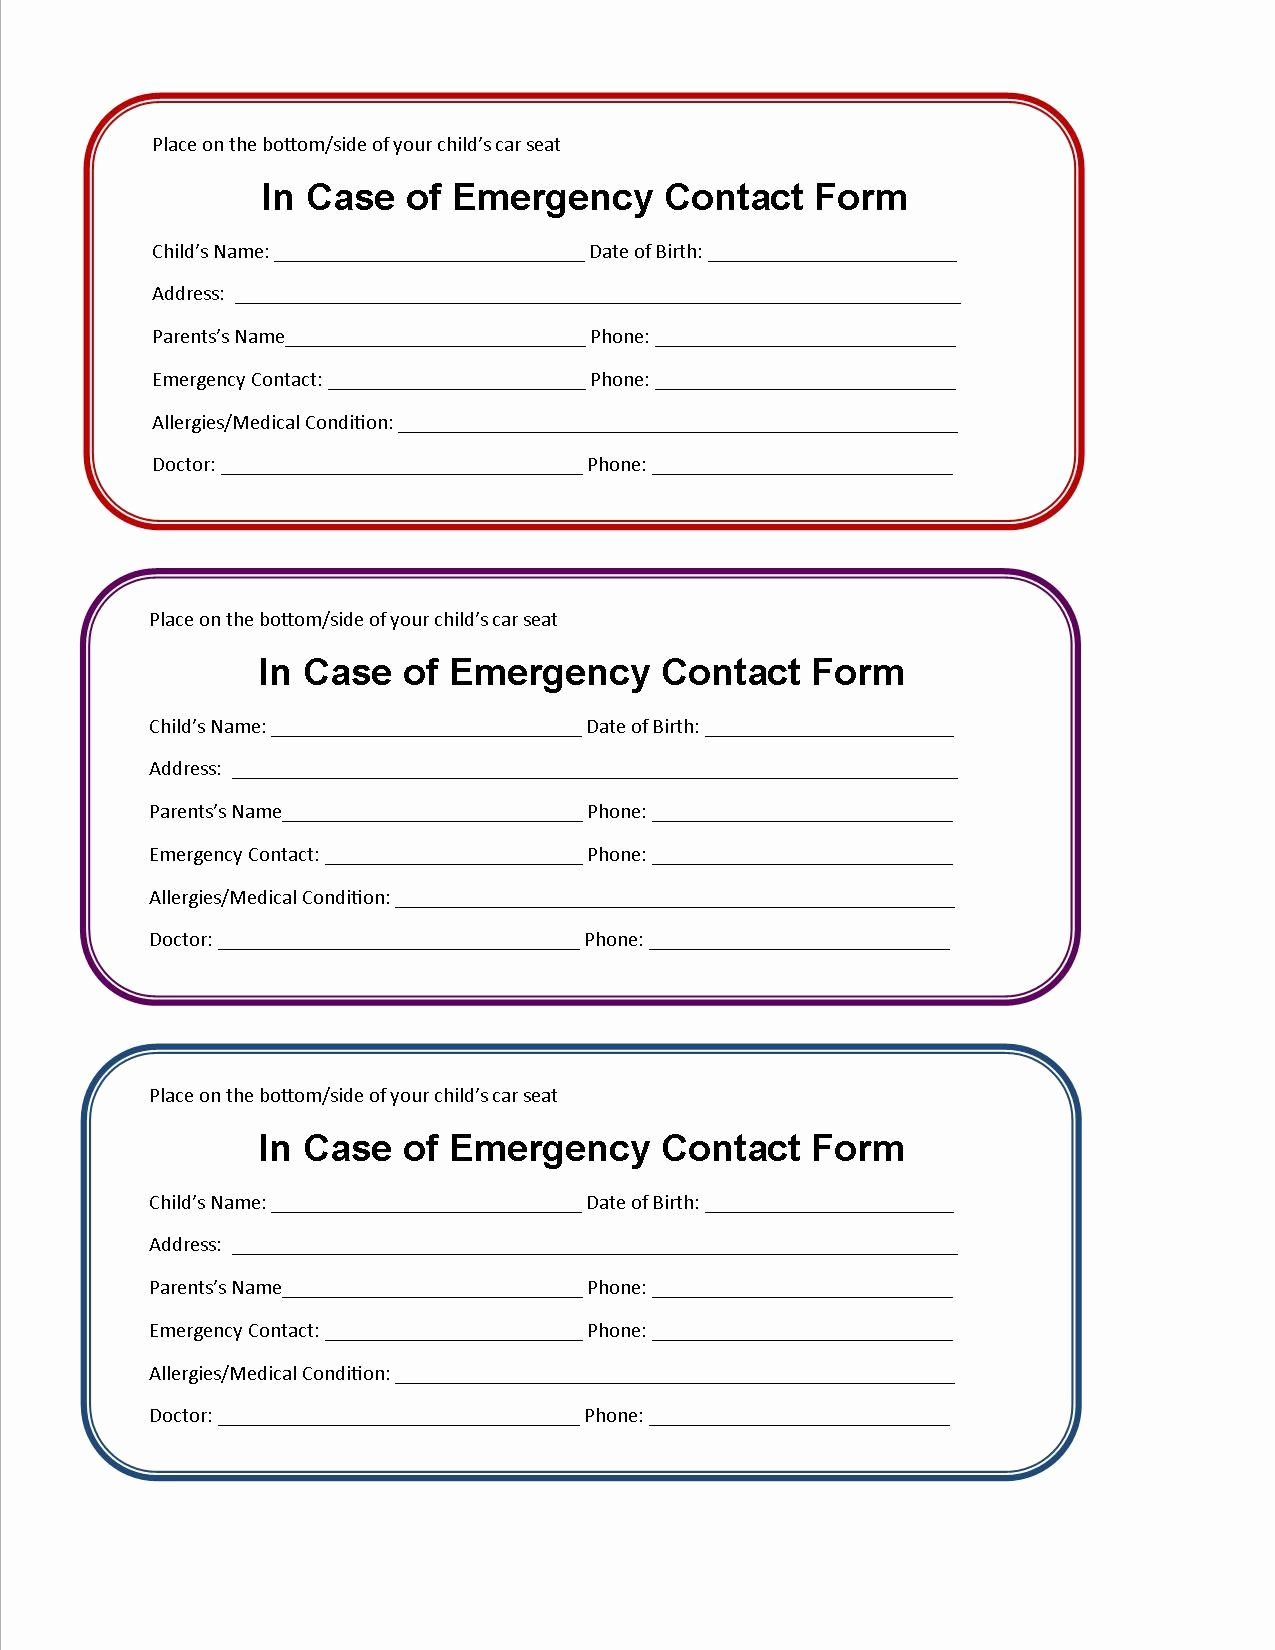 School Emergency Card Template Beautiful Printable Emergency Contact form for Car Seat Super Mom I Am